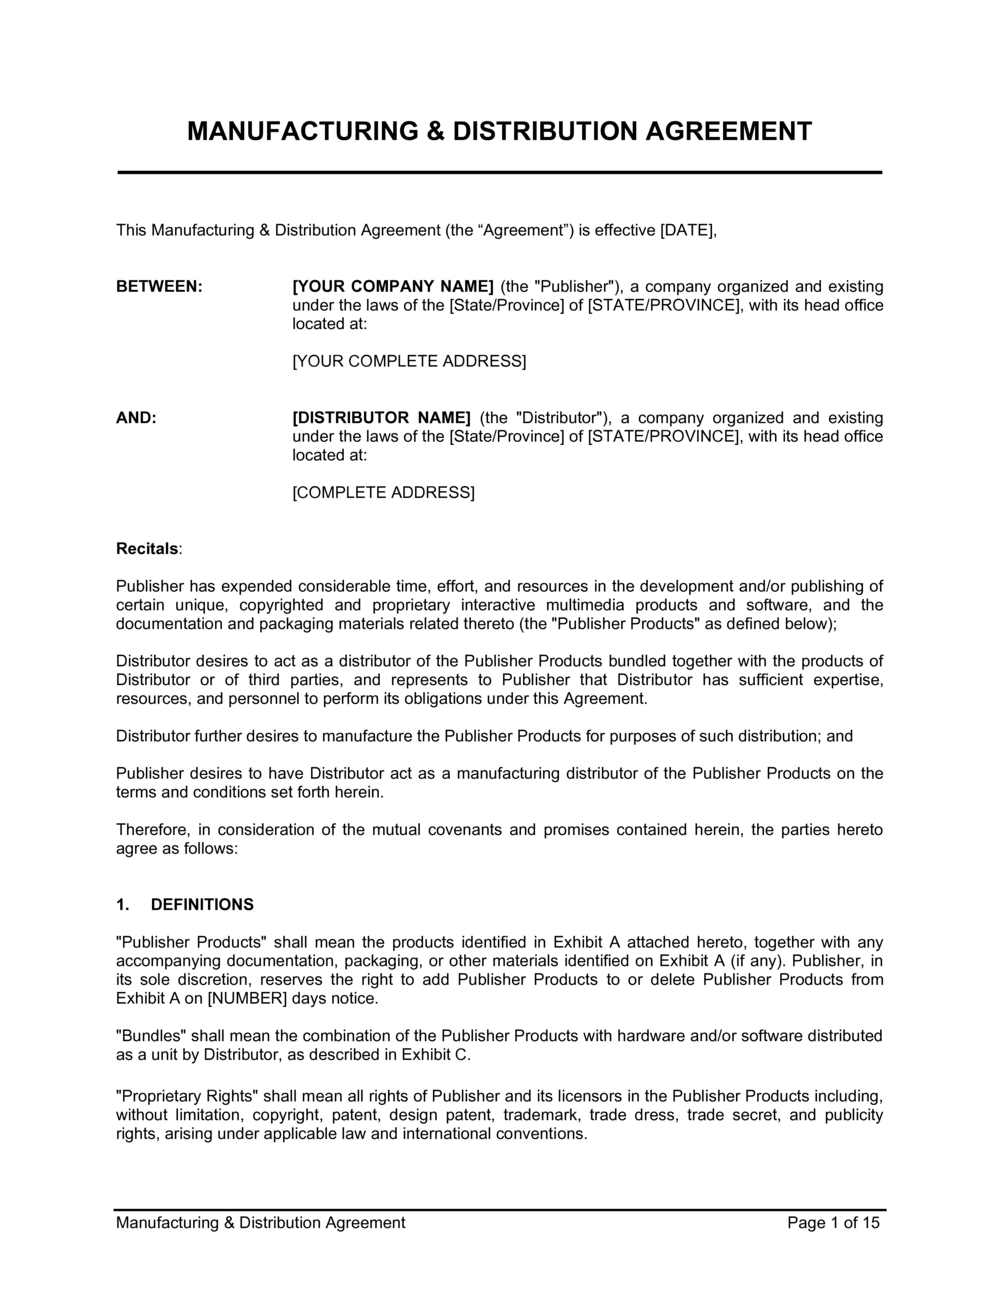 Business-in-a-Box's Manufacturing Distribution Agreement Template